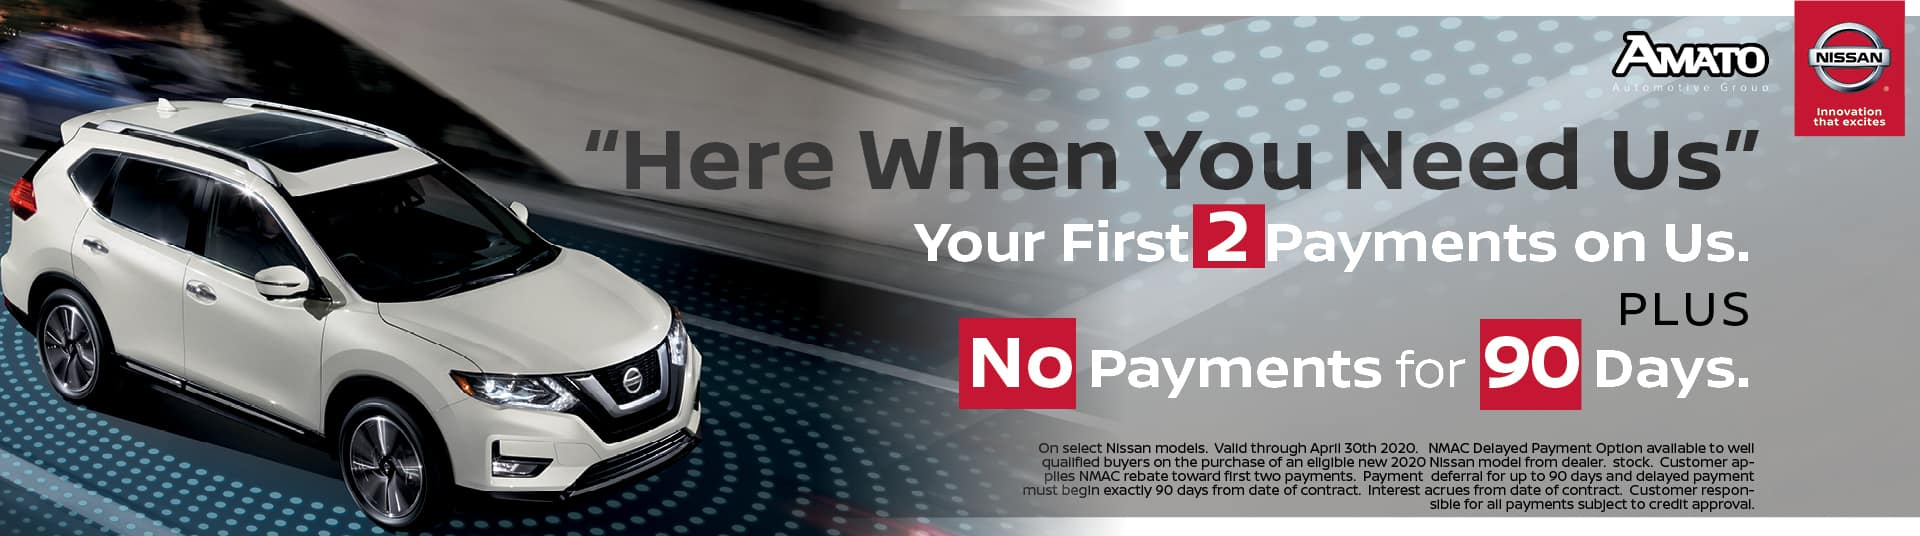 Here When You Need If First 2 Payments